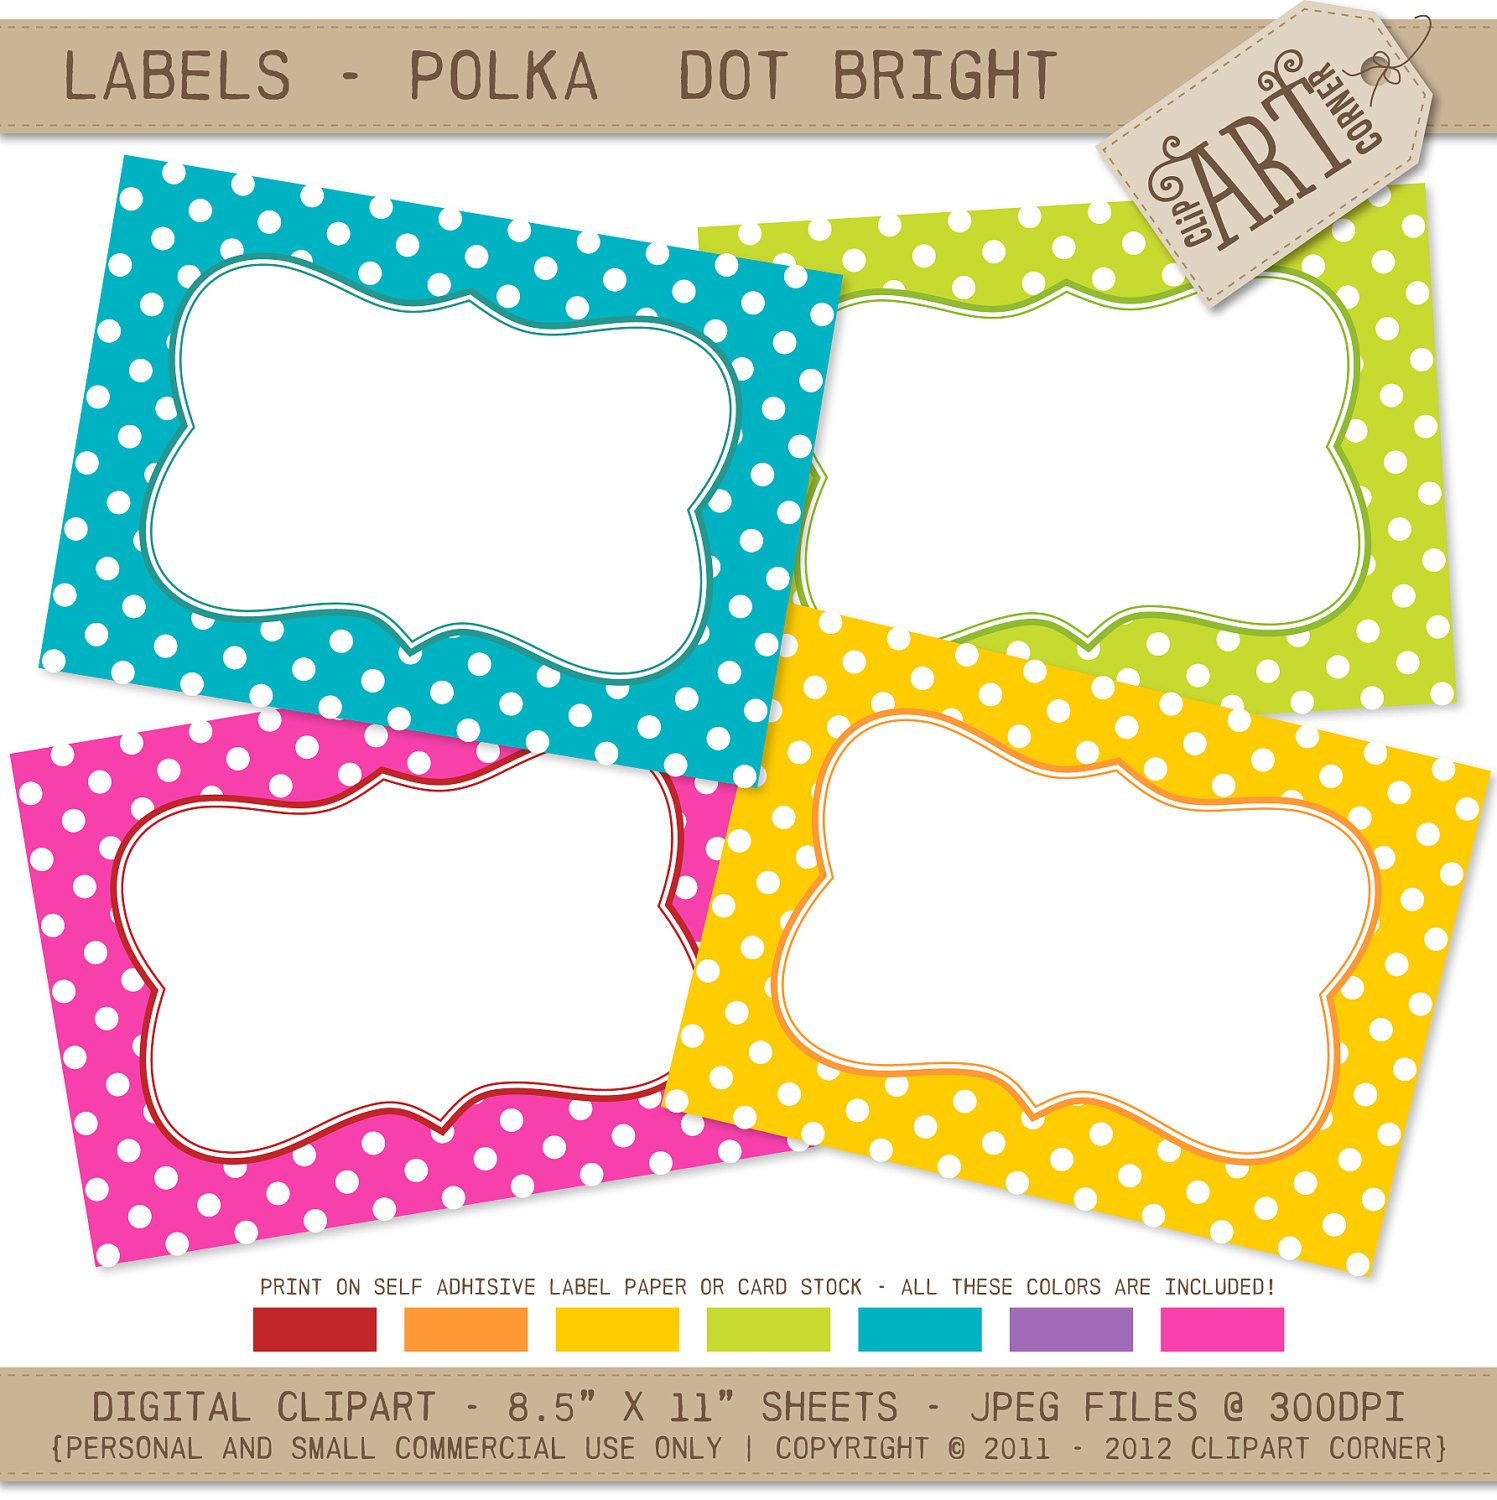 Polka Dot Labels Free Printable Name Tags DIY And Crafts - Small name tag template